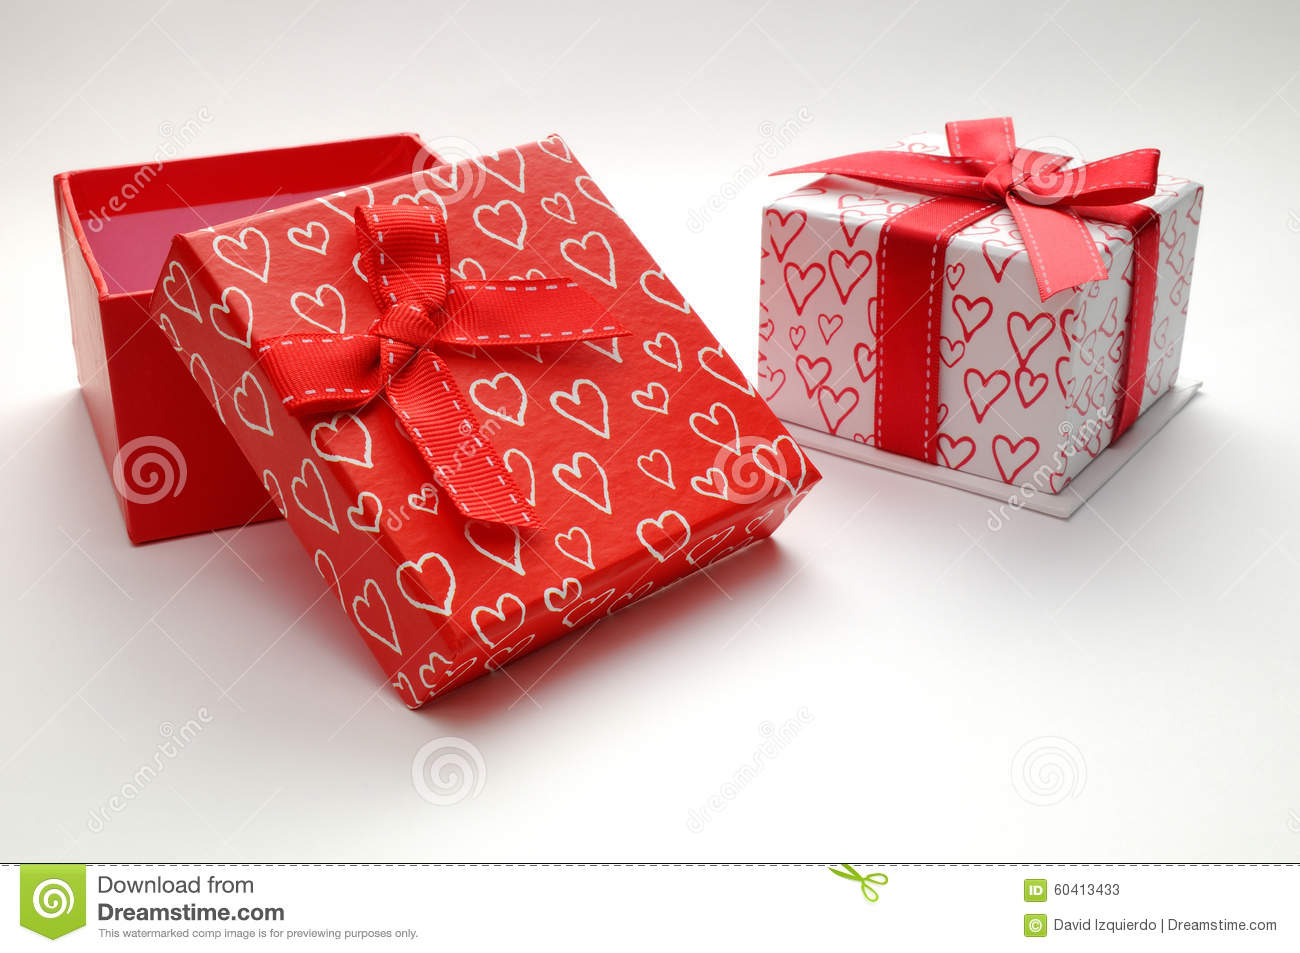 Two Decorative Gift Boxes With Hearts Printed Isolated. Cheap Living Room Carpets. Small Living Room Set Up. Colours Of Walls For Living Room. Best Living Room Wall Colors. Living Room Milton Keynes. Dining Room Decorating Ideas Pictures. Victorian Style Dining Room Furniture. Rustic Dining Room Decor